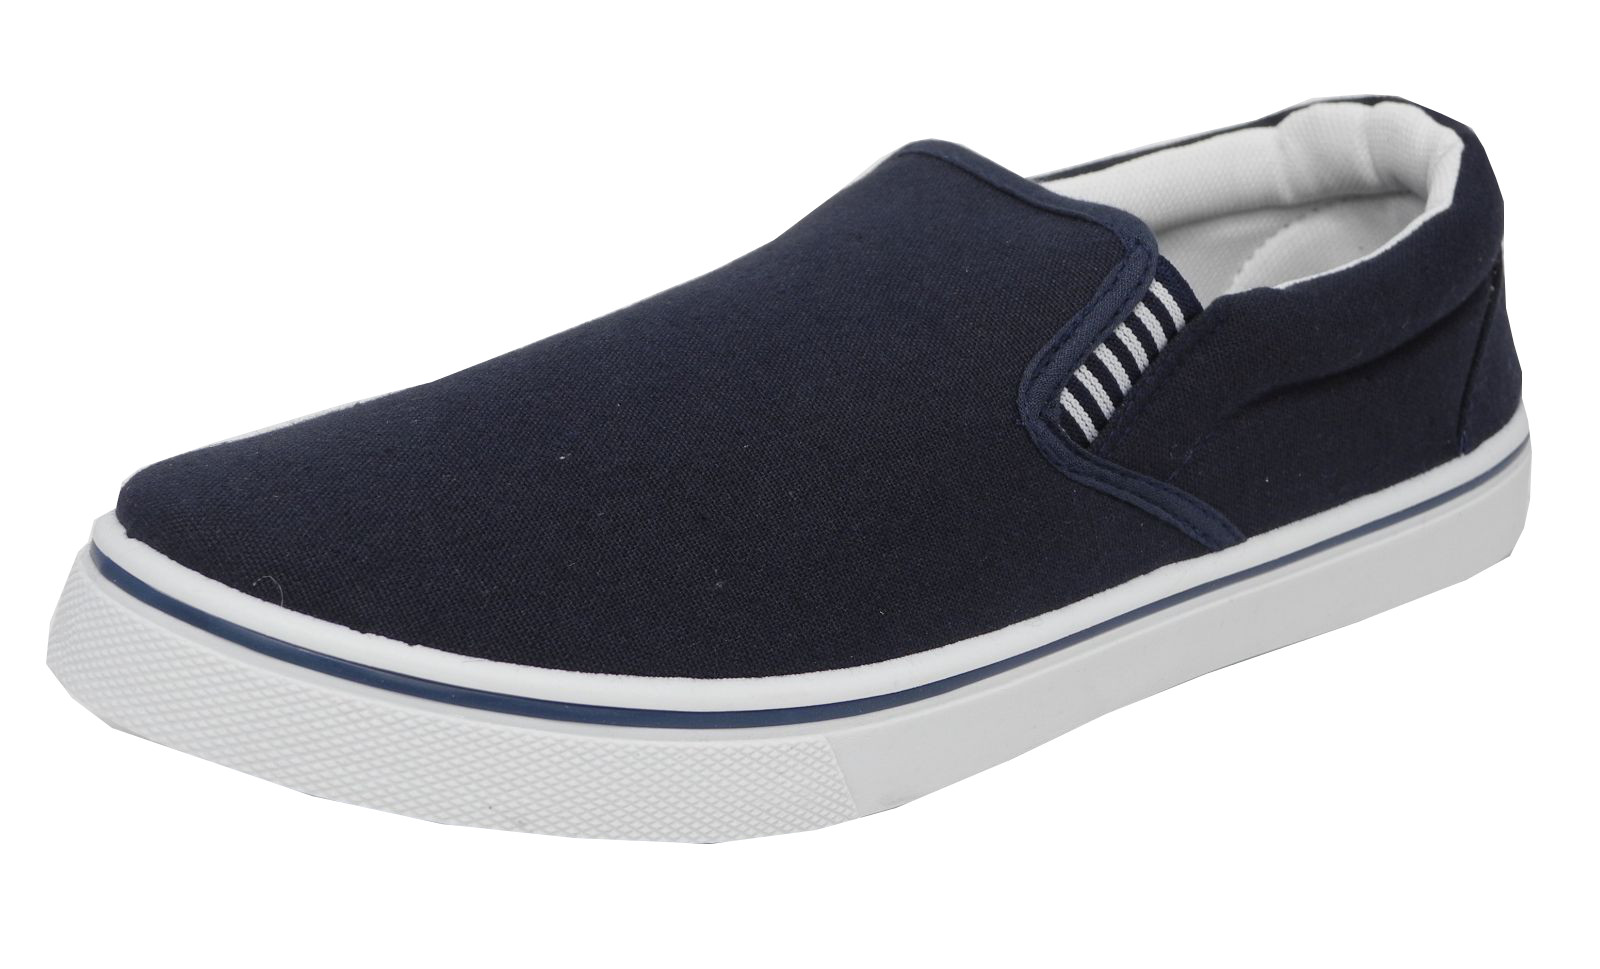 Mens Slip On Canvas Boat Shoes